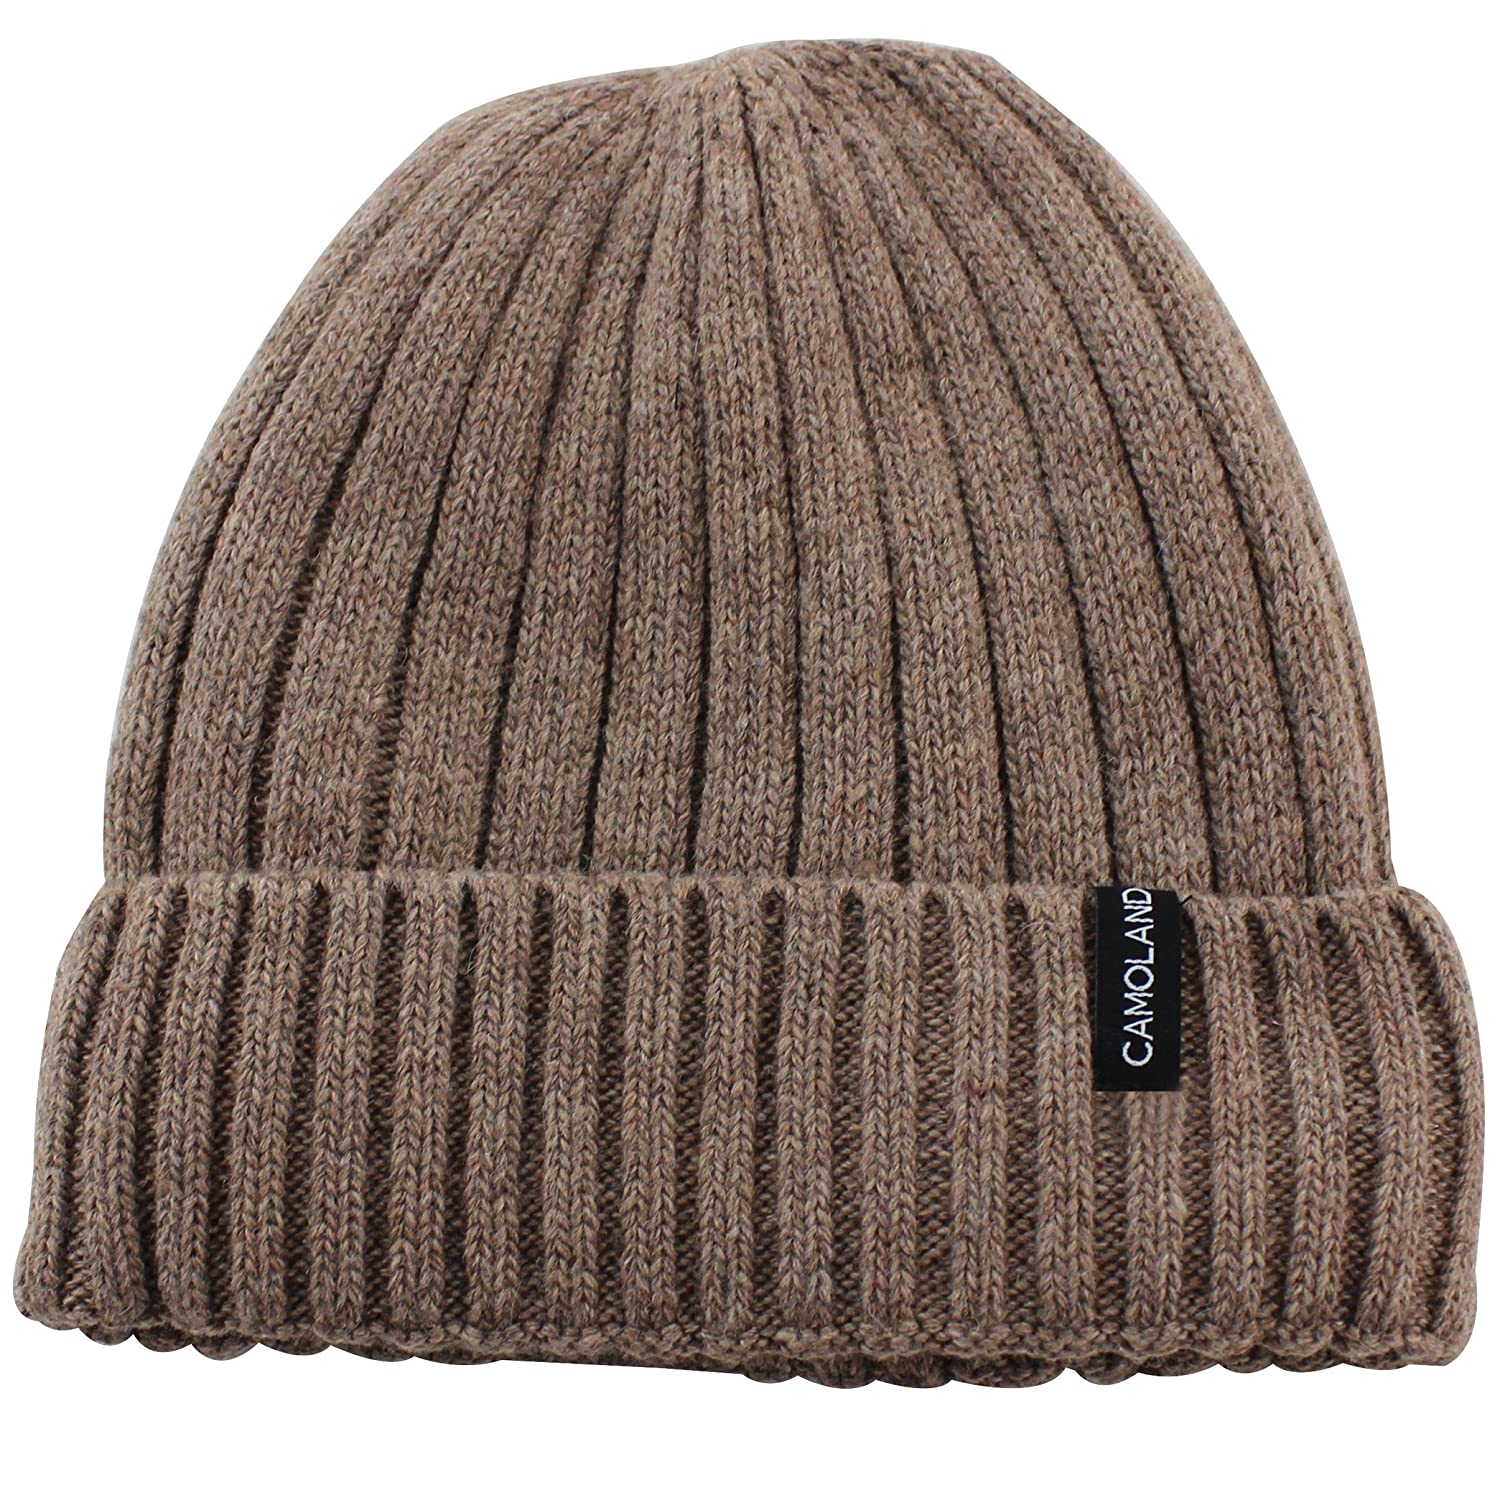 853f4d94f71 CAMOLAND Mens Fleece Wool Cable Knit Winter Beanie Hat EWH001-BK